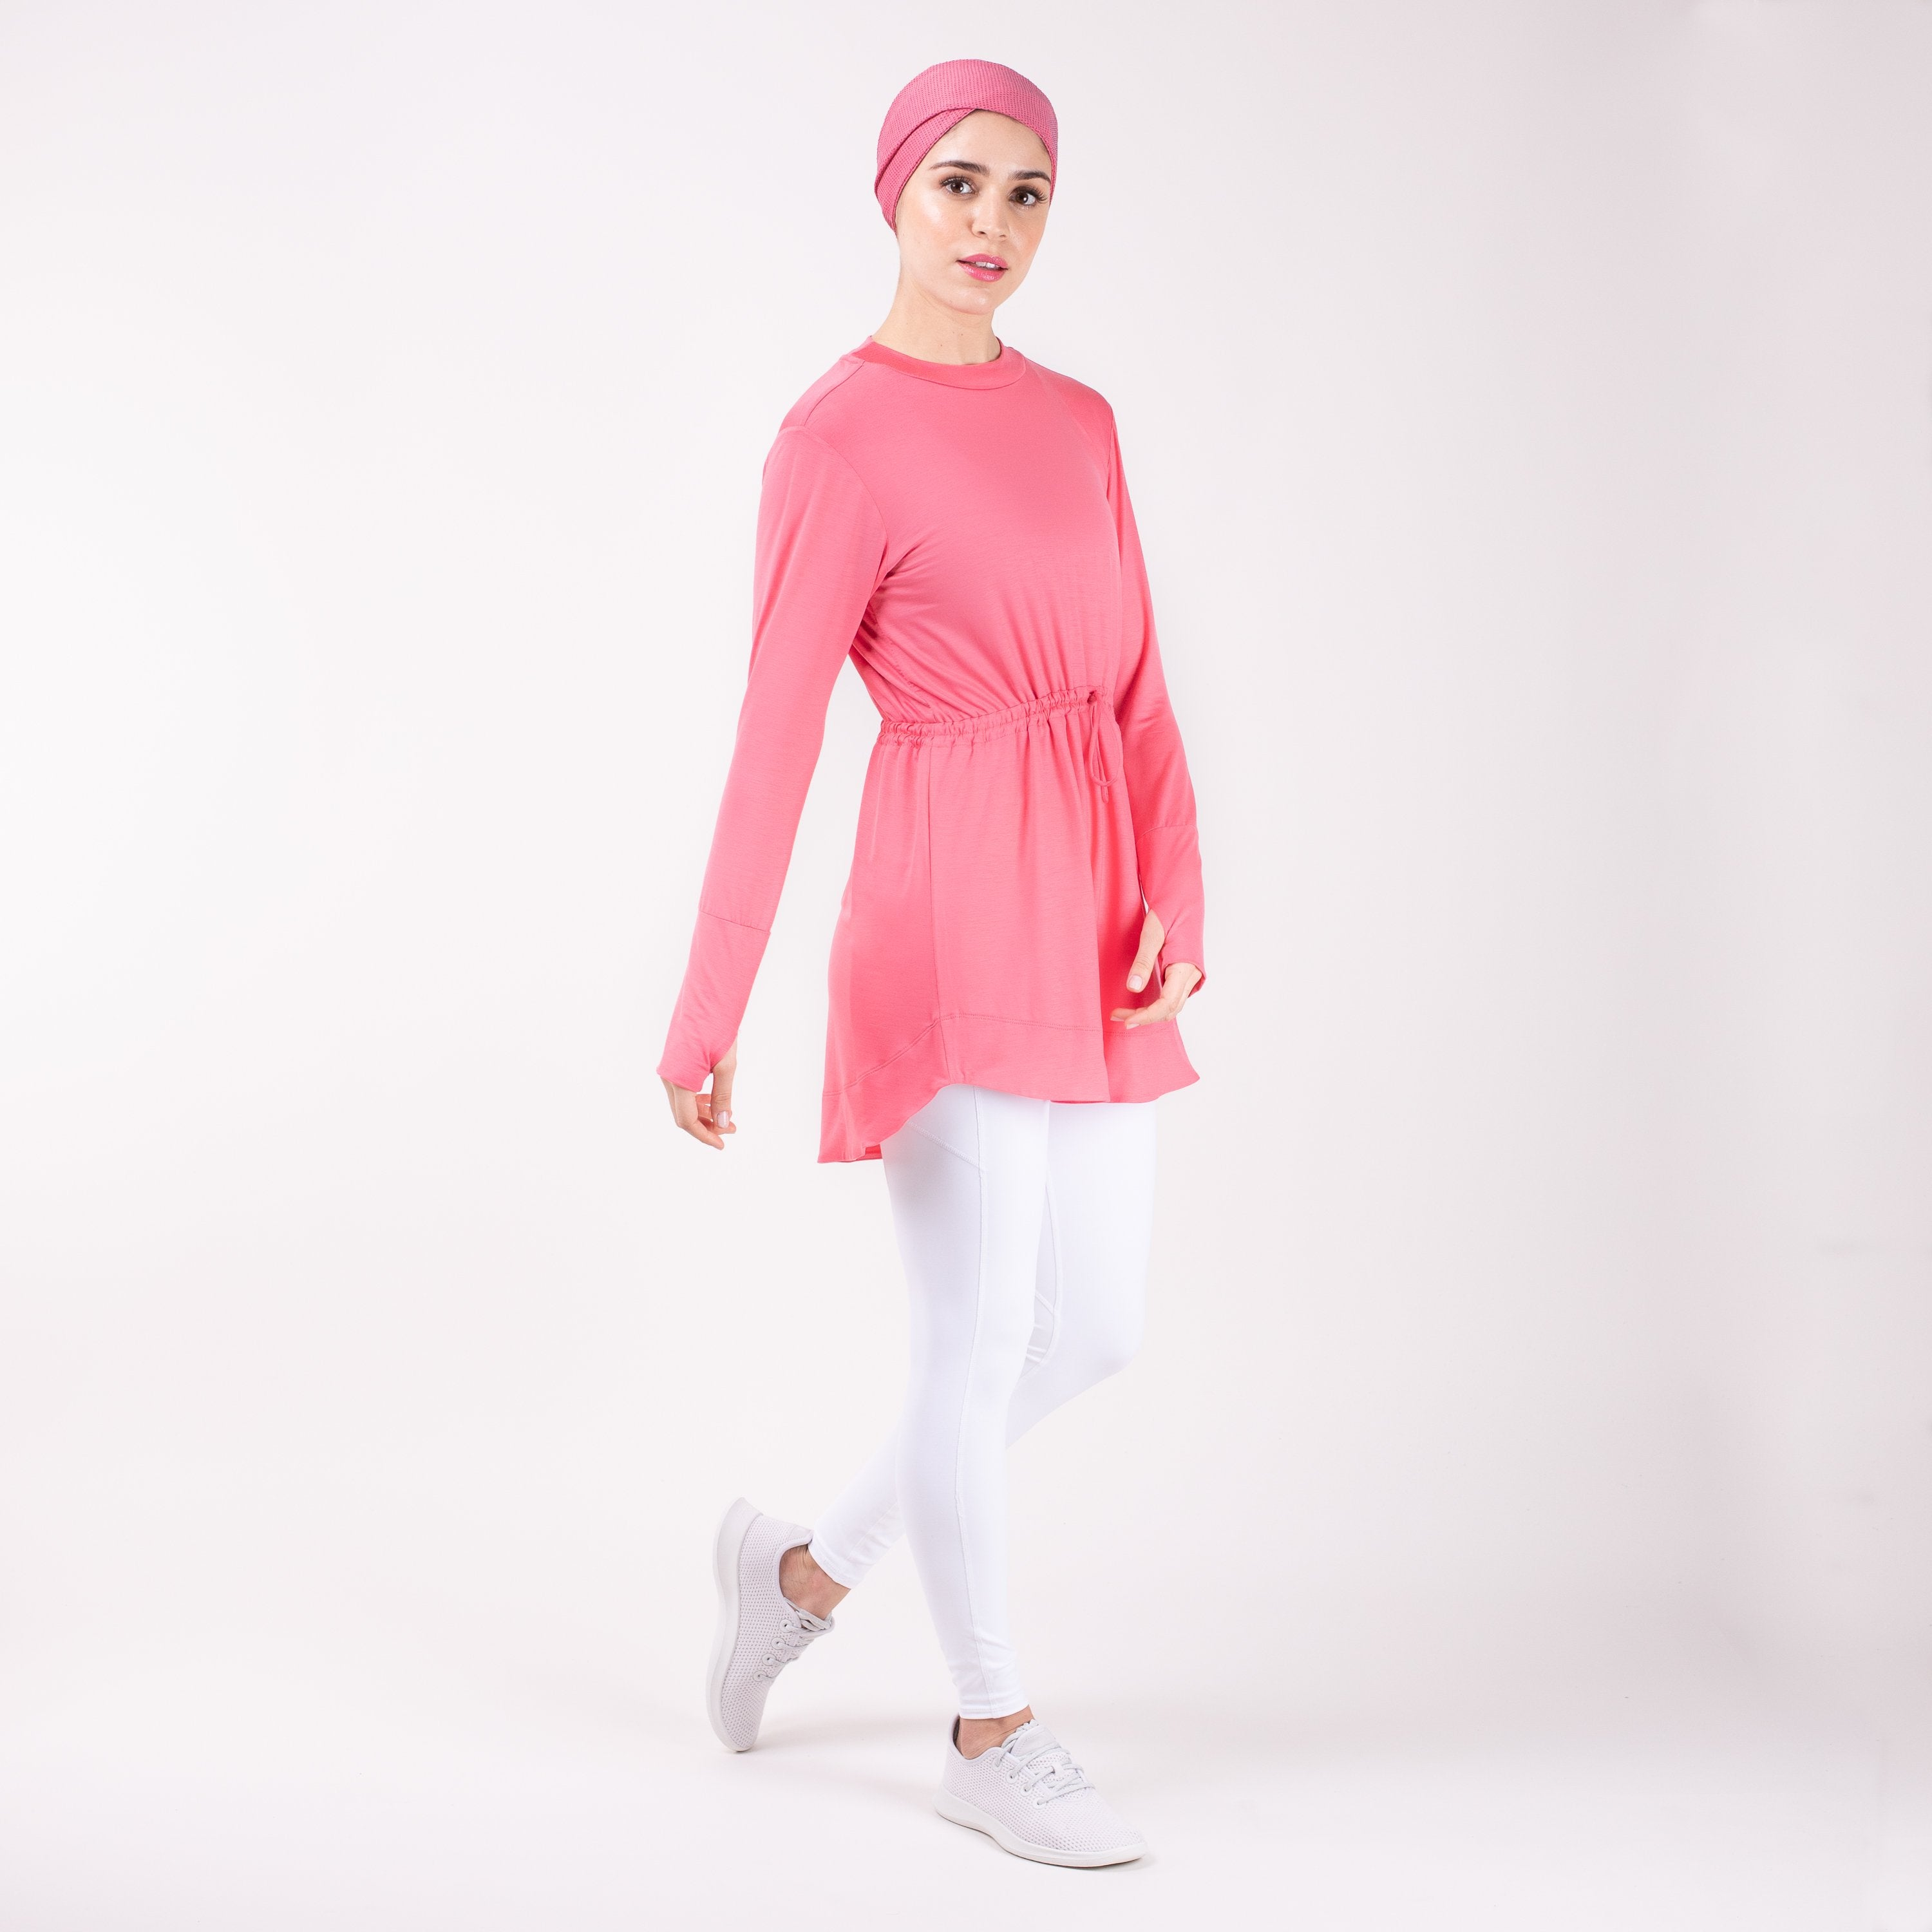 Woman walking to the right wearing the modest, berry pink HAWA drawstring tee shirt and white leggings in front of a white back drop.